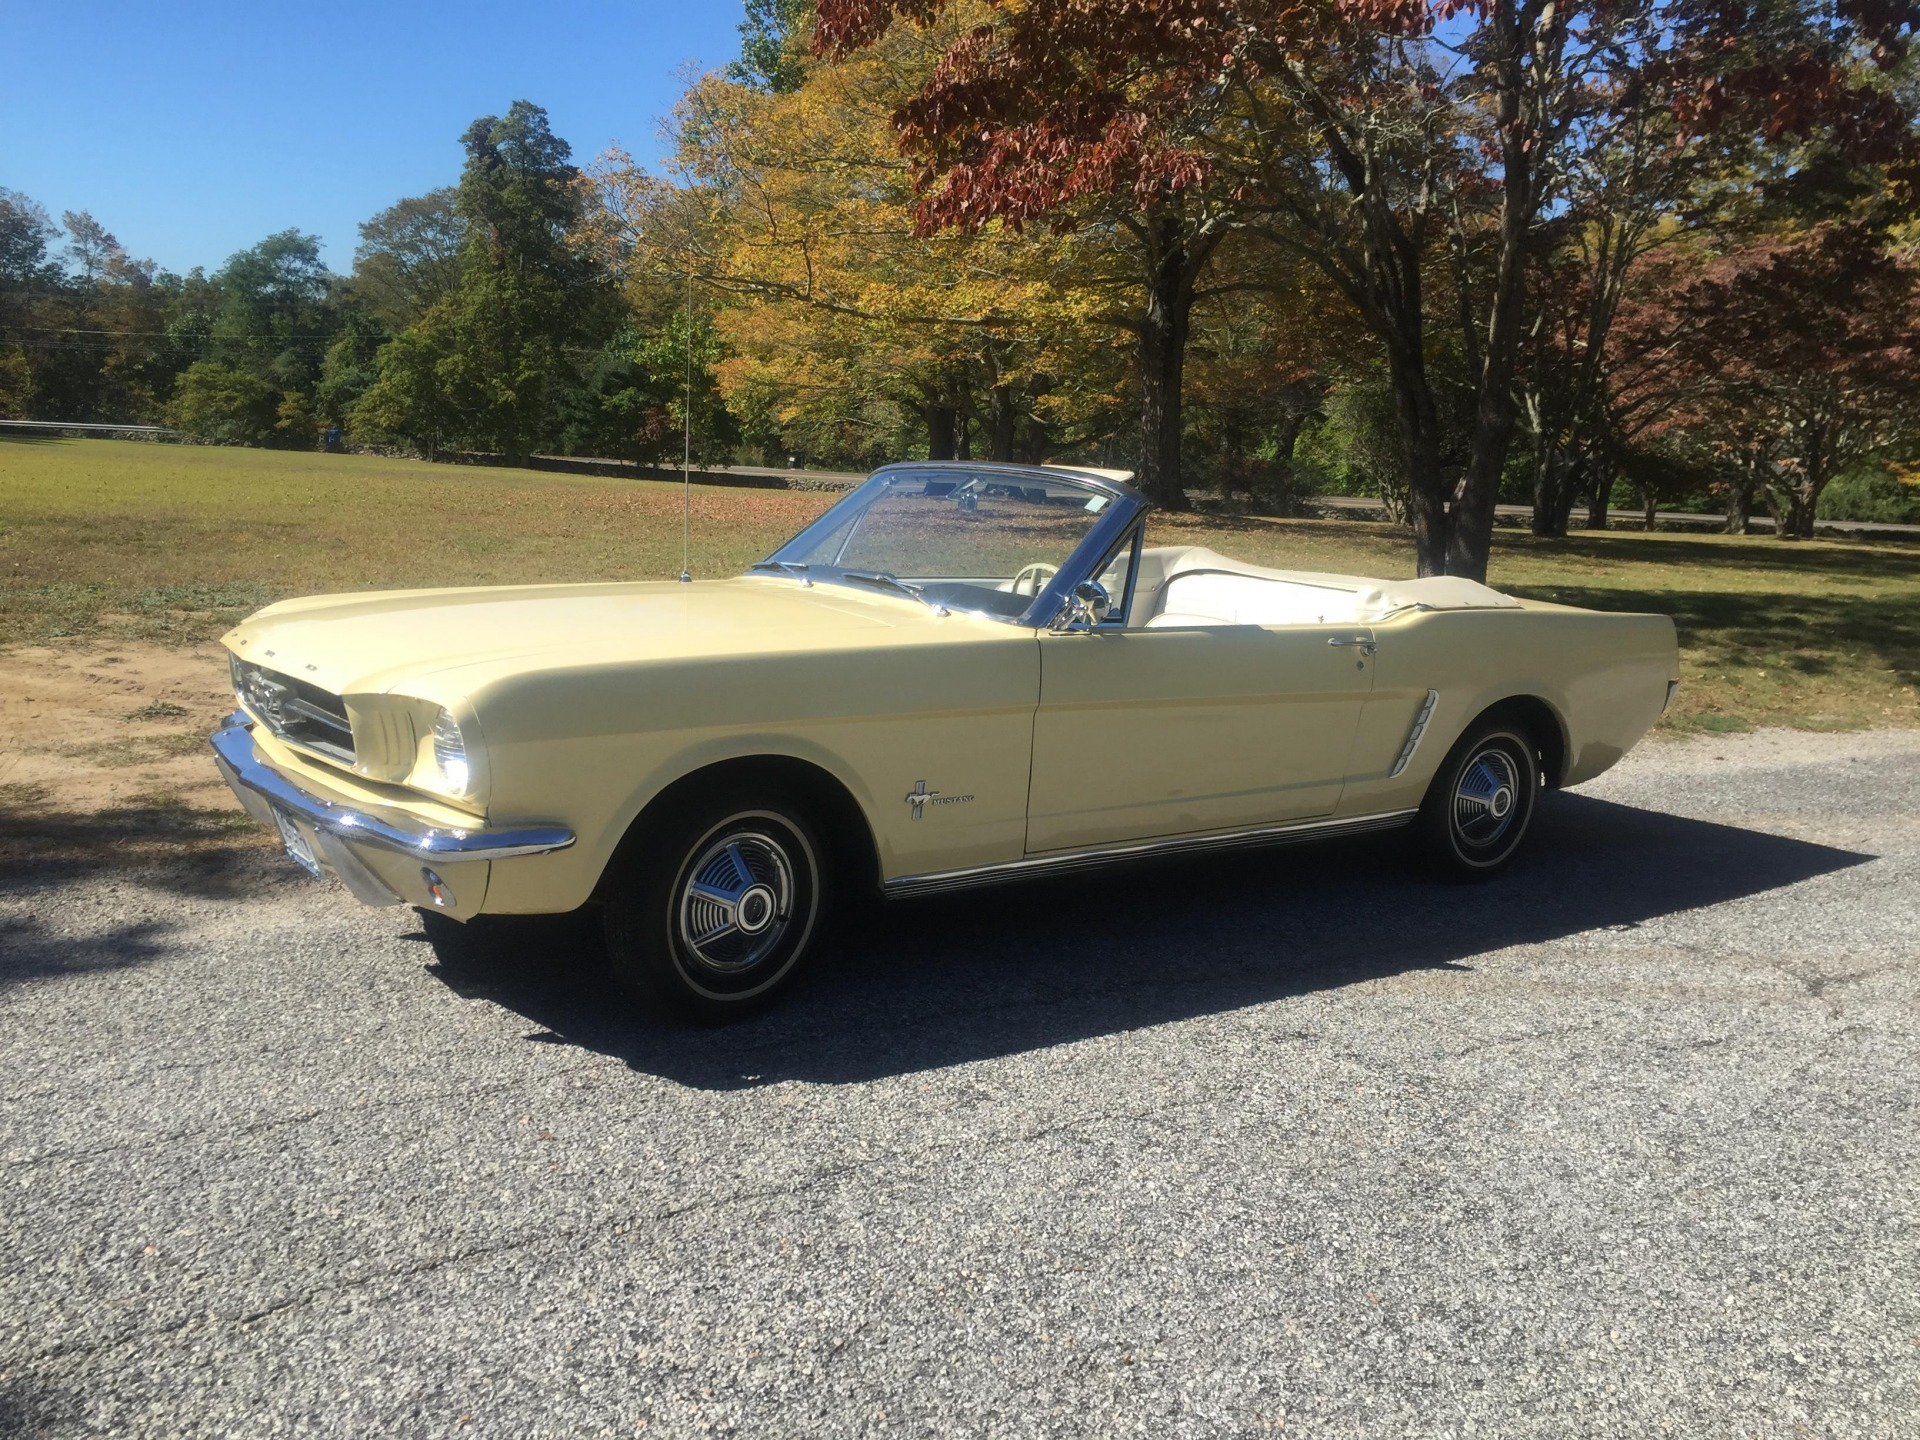 1965 Mustang Convertible Yellow Ford Mustang Photo Gallery Shnack Com